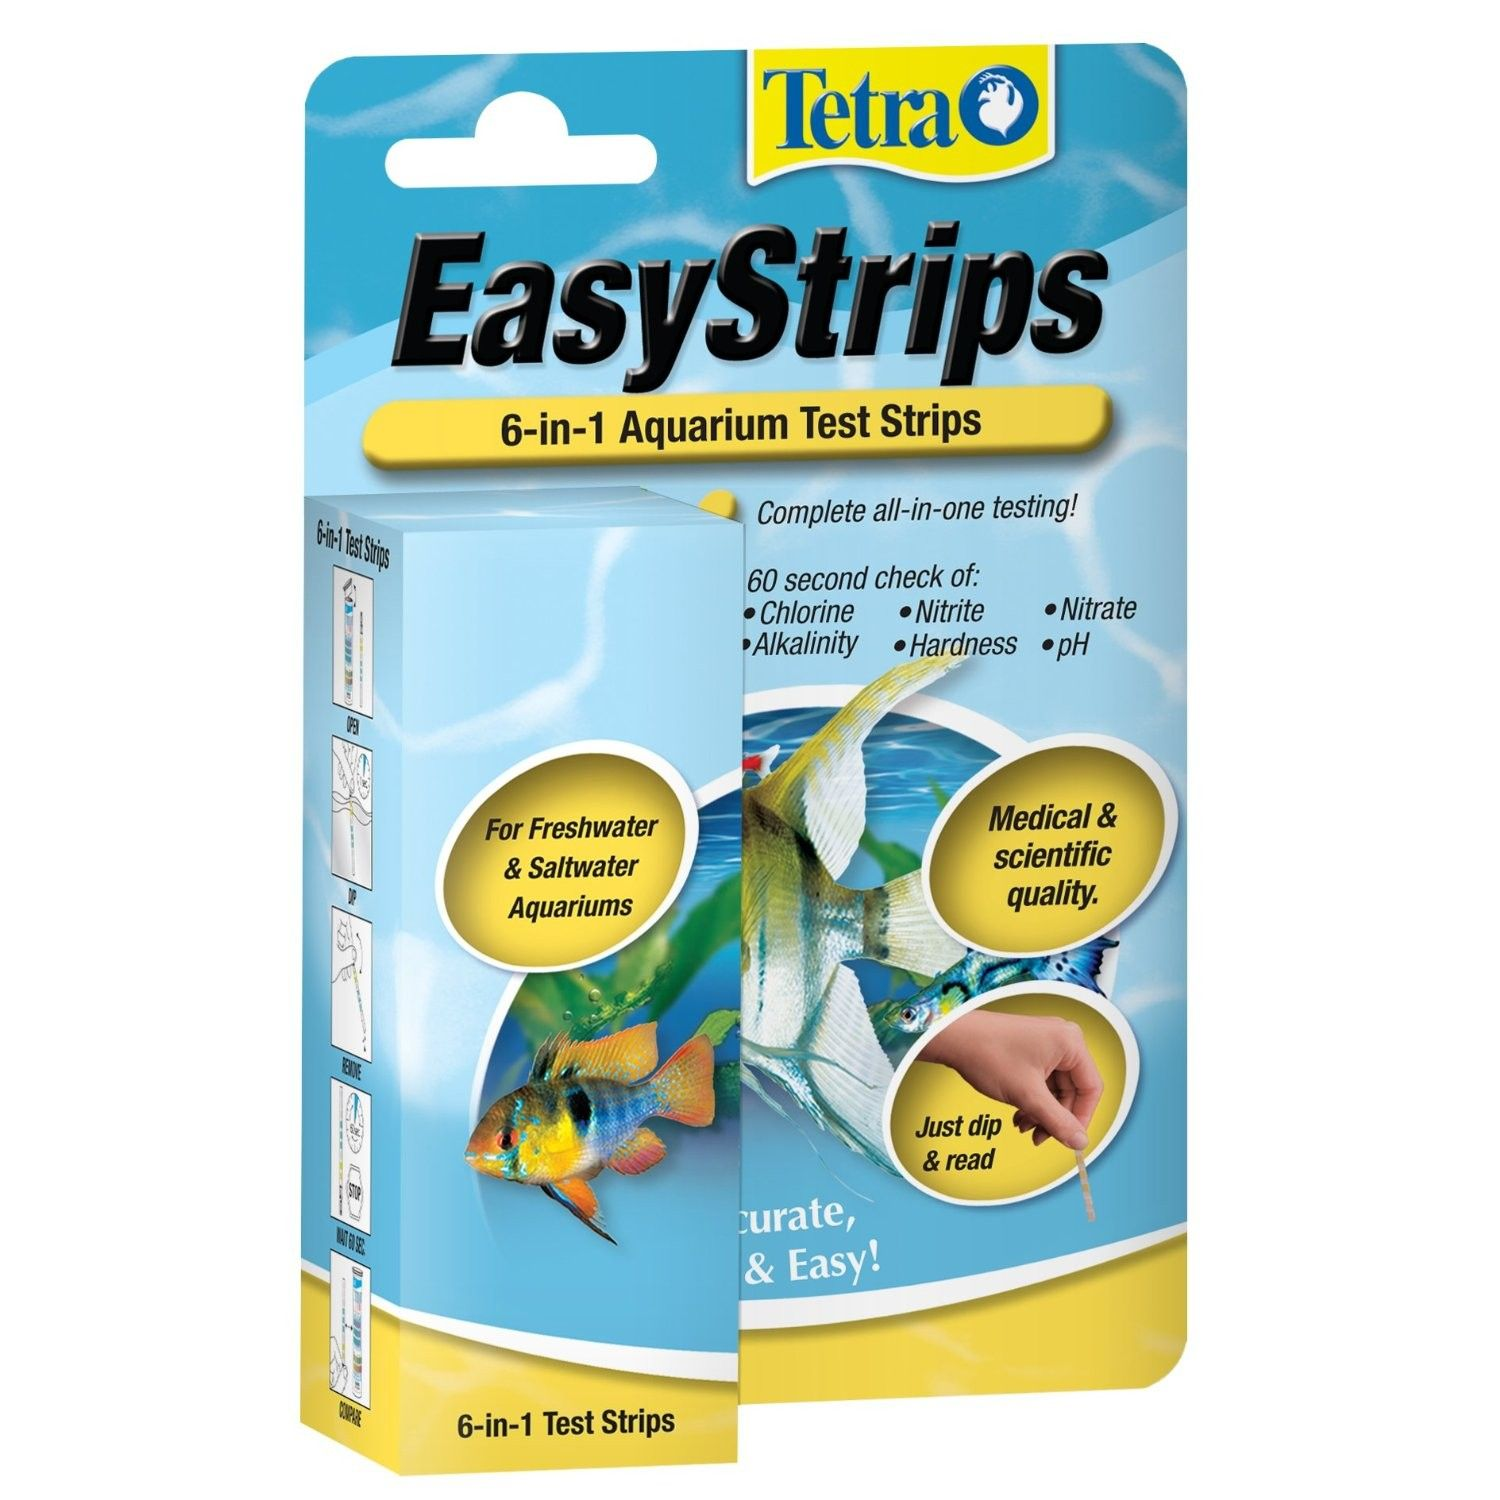 Tetra 6 in 1 Test Strips